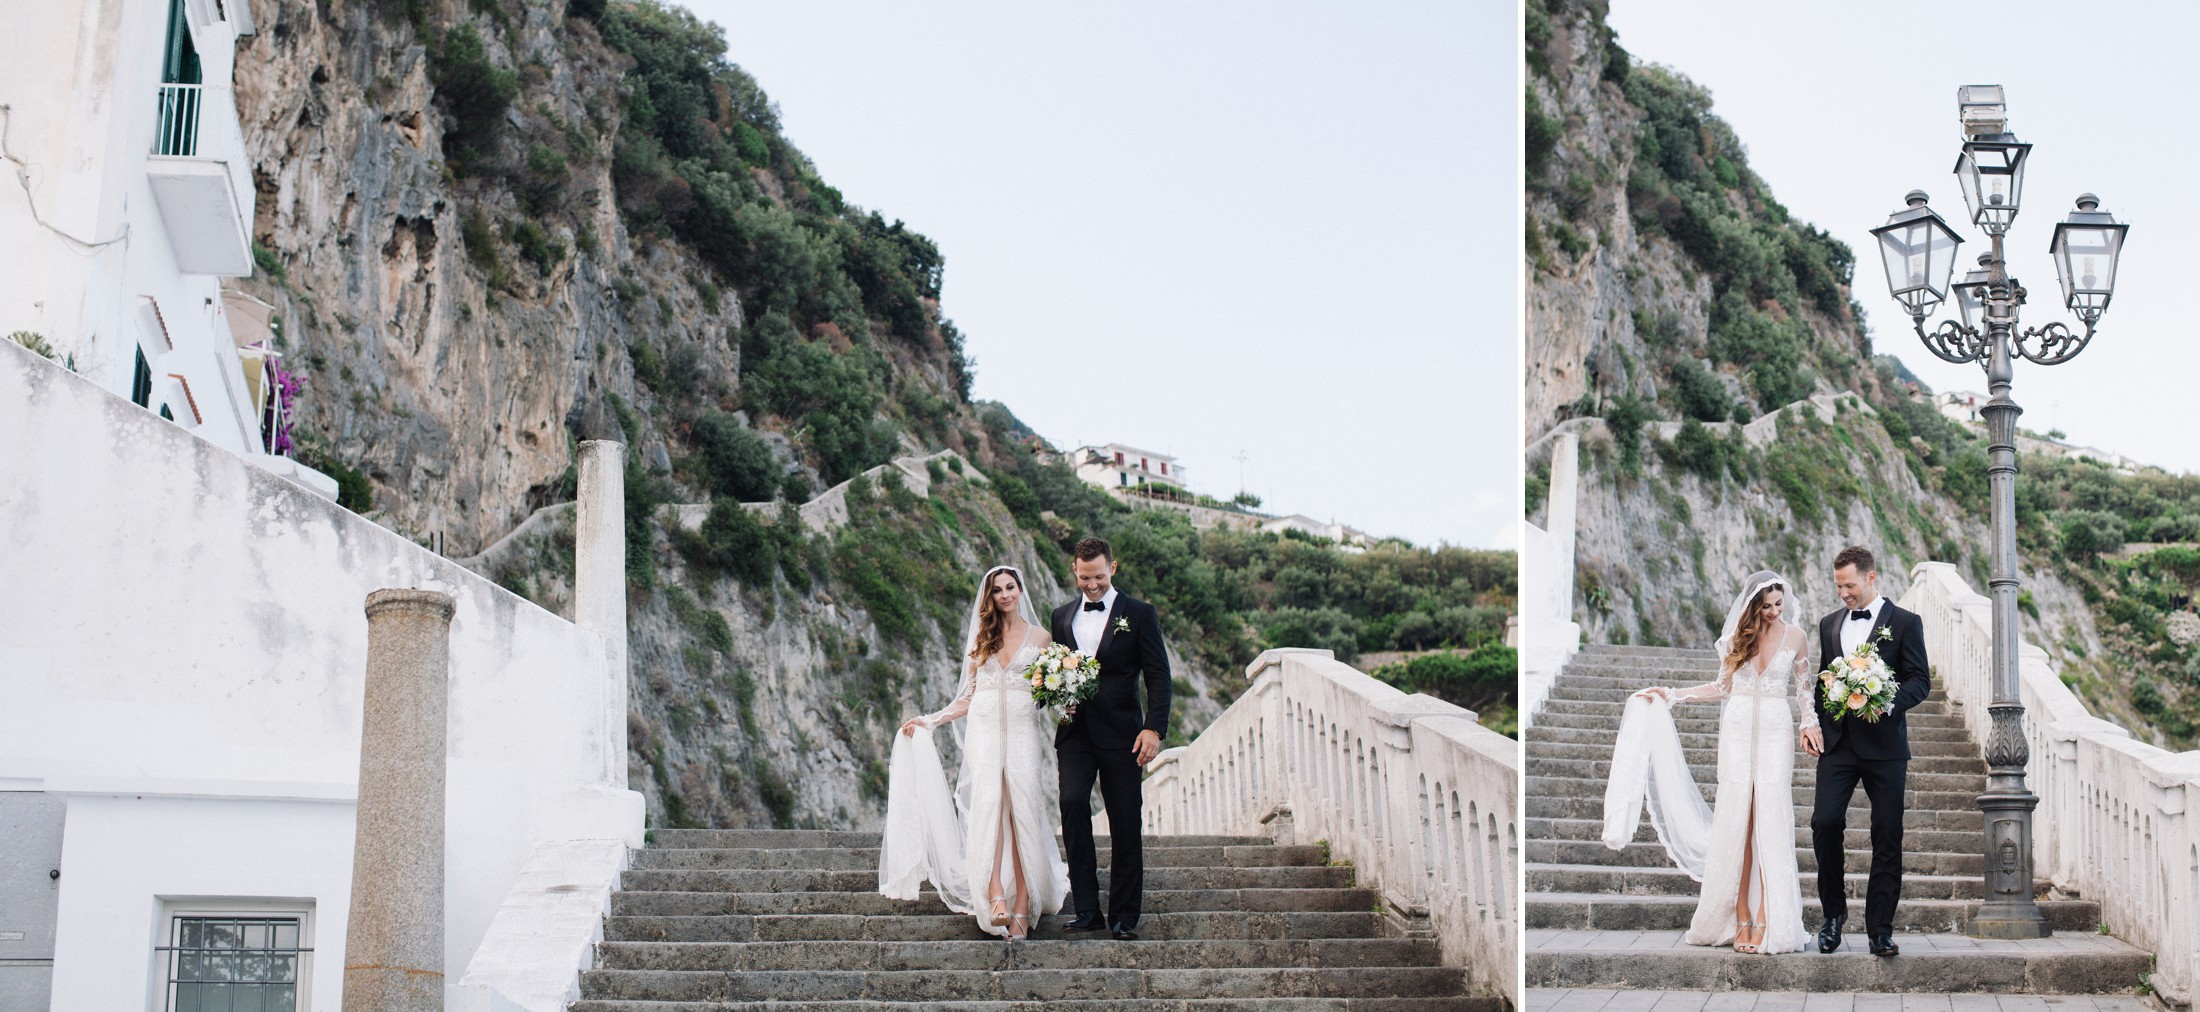 wedding at villa cimbrone the bride and the groom walking together